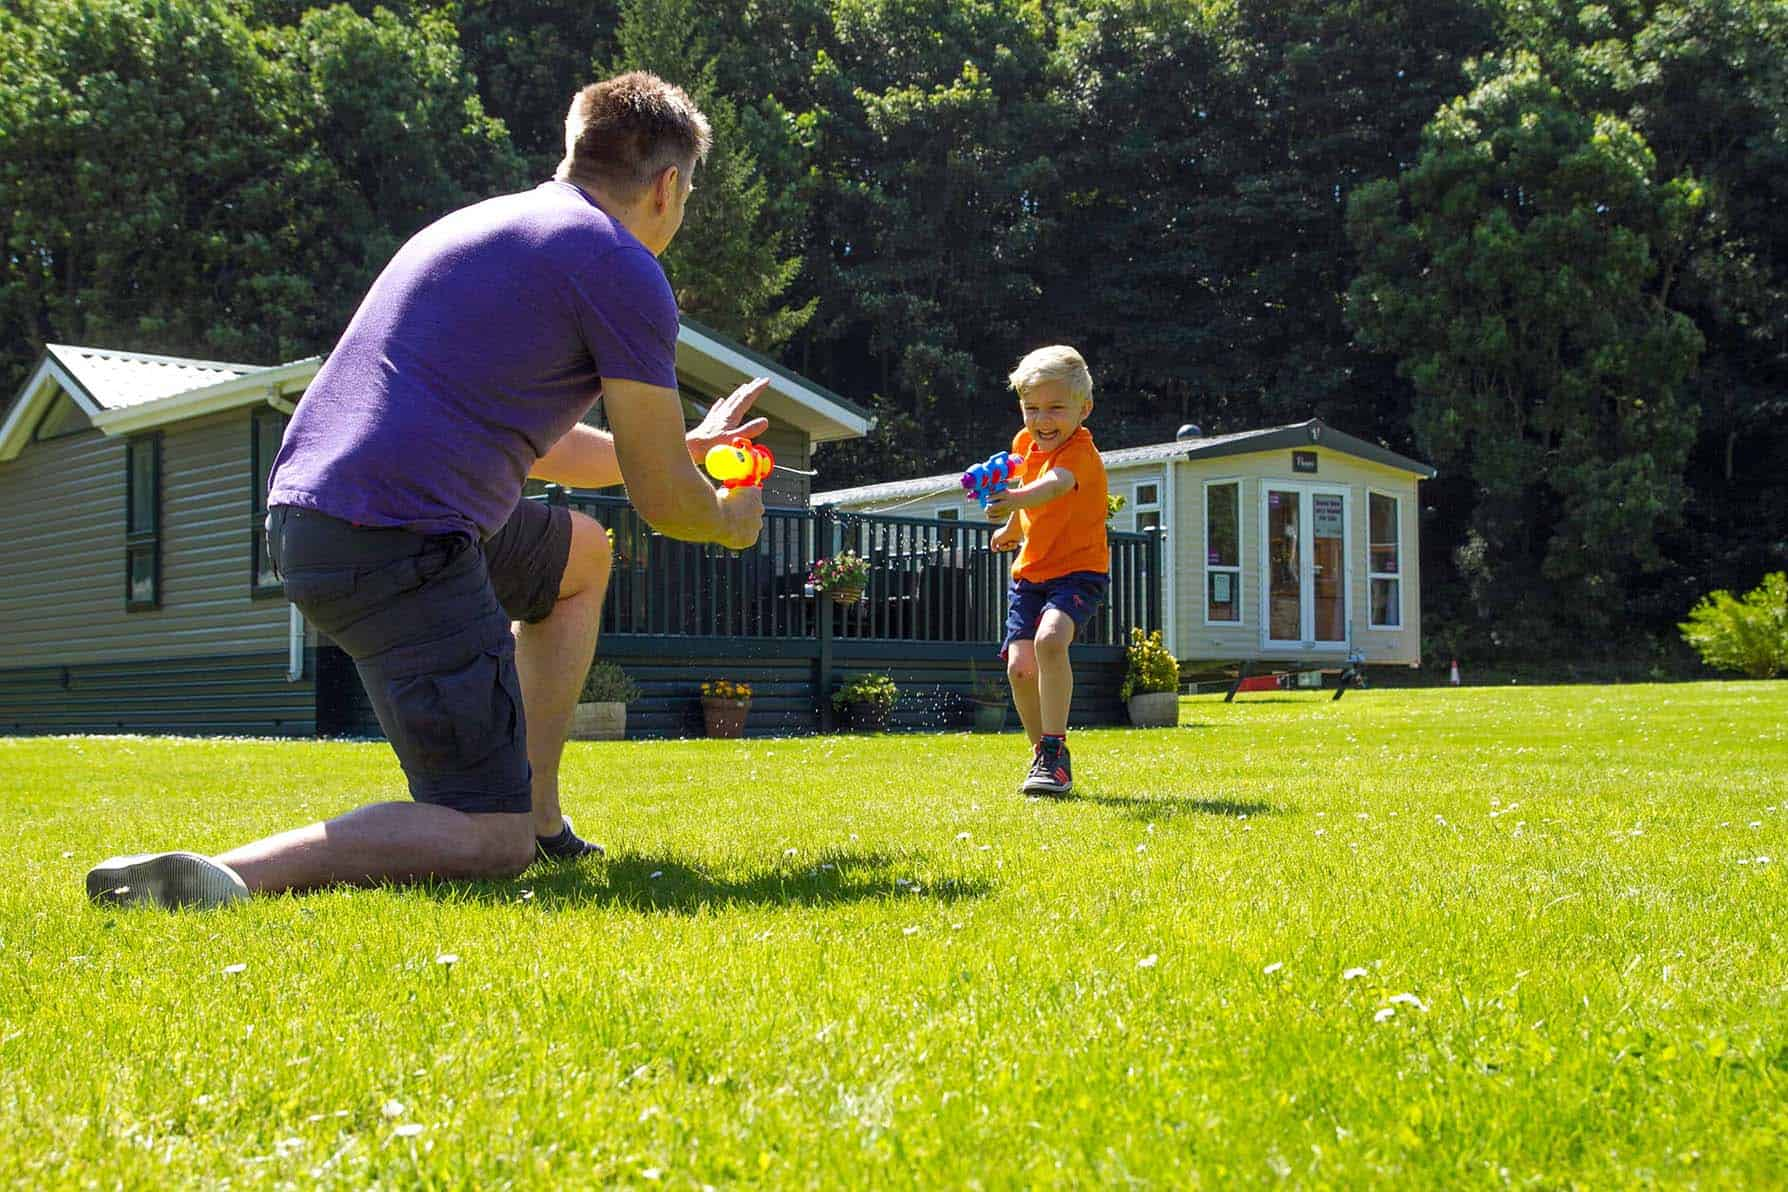 Enjoy the great outdoors on holiday at Thurston Manor